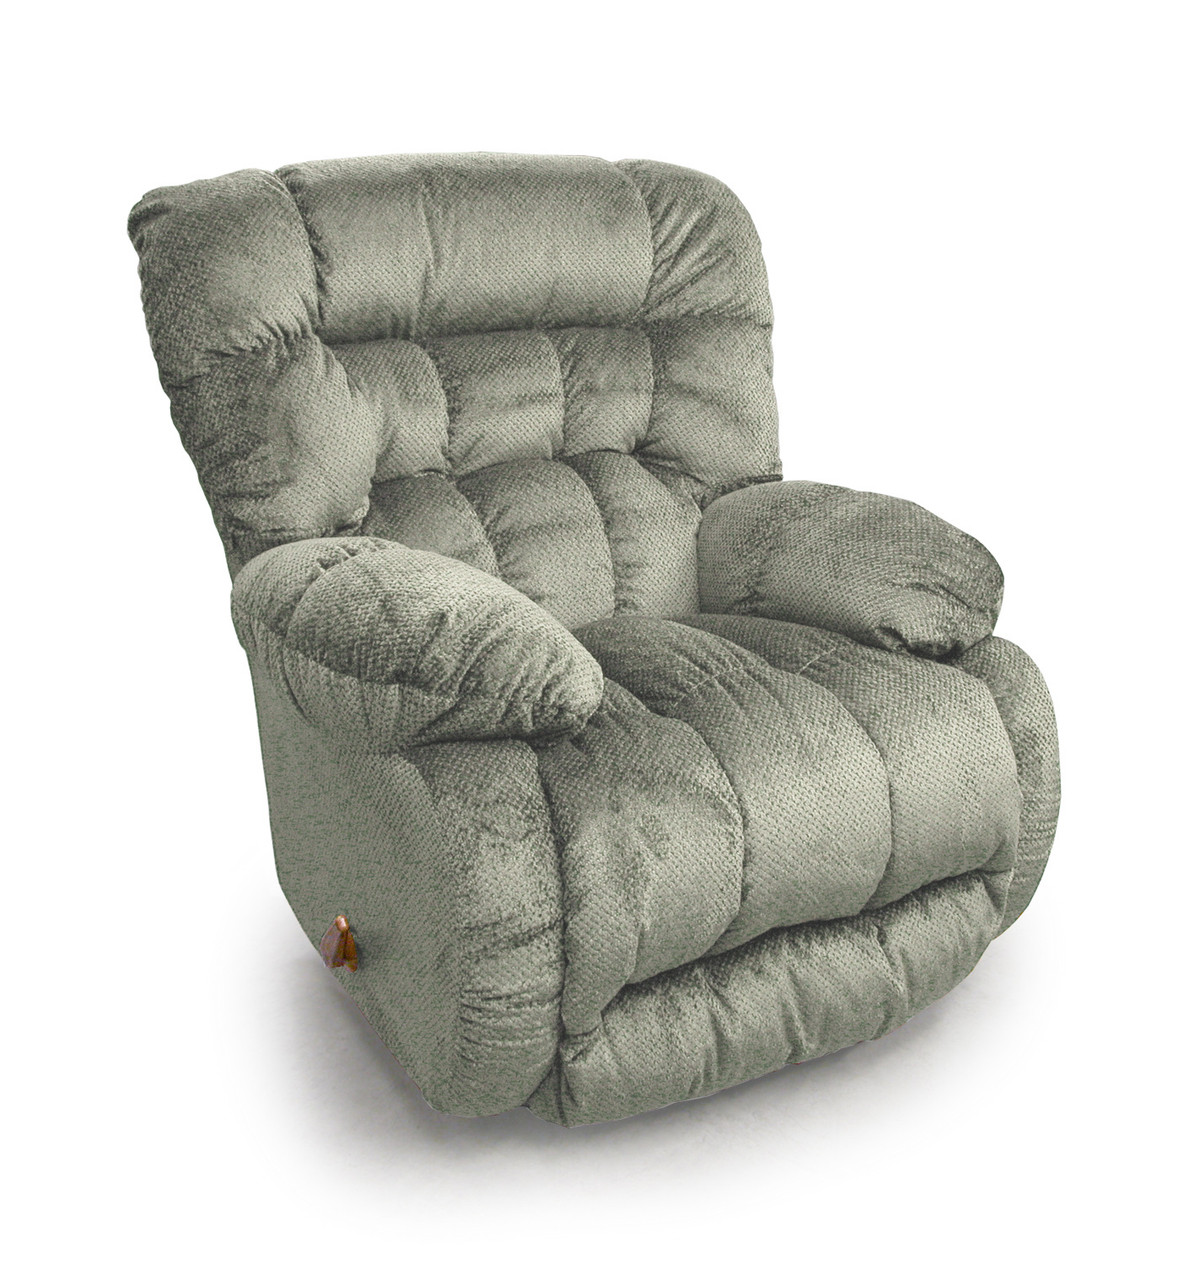 The Plusher Rocker Recliner Sold At Rose Brothers Furniture Serving Wilmington And Jacksonville